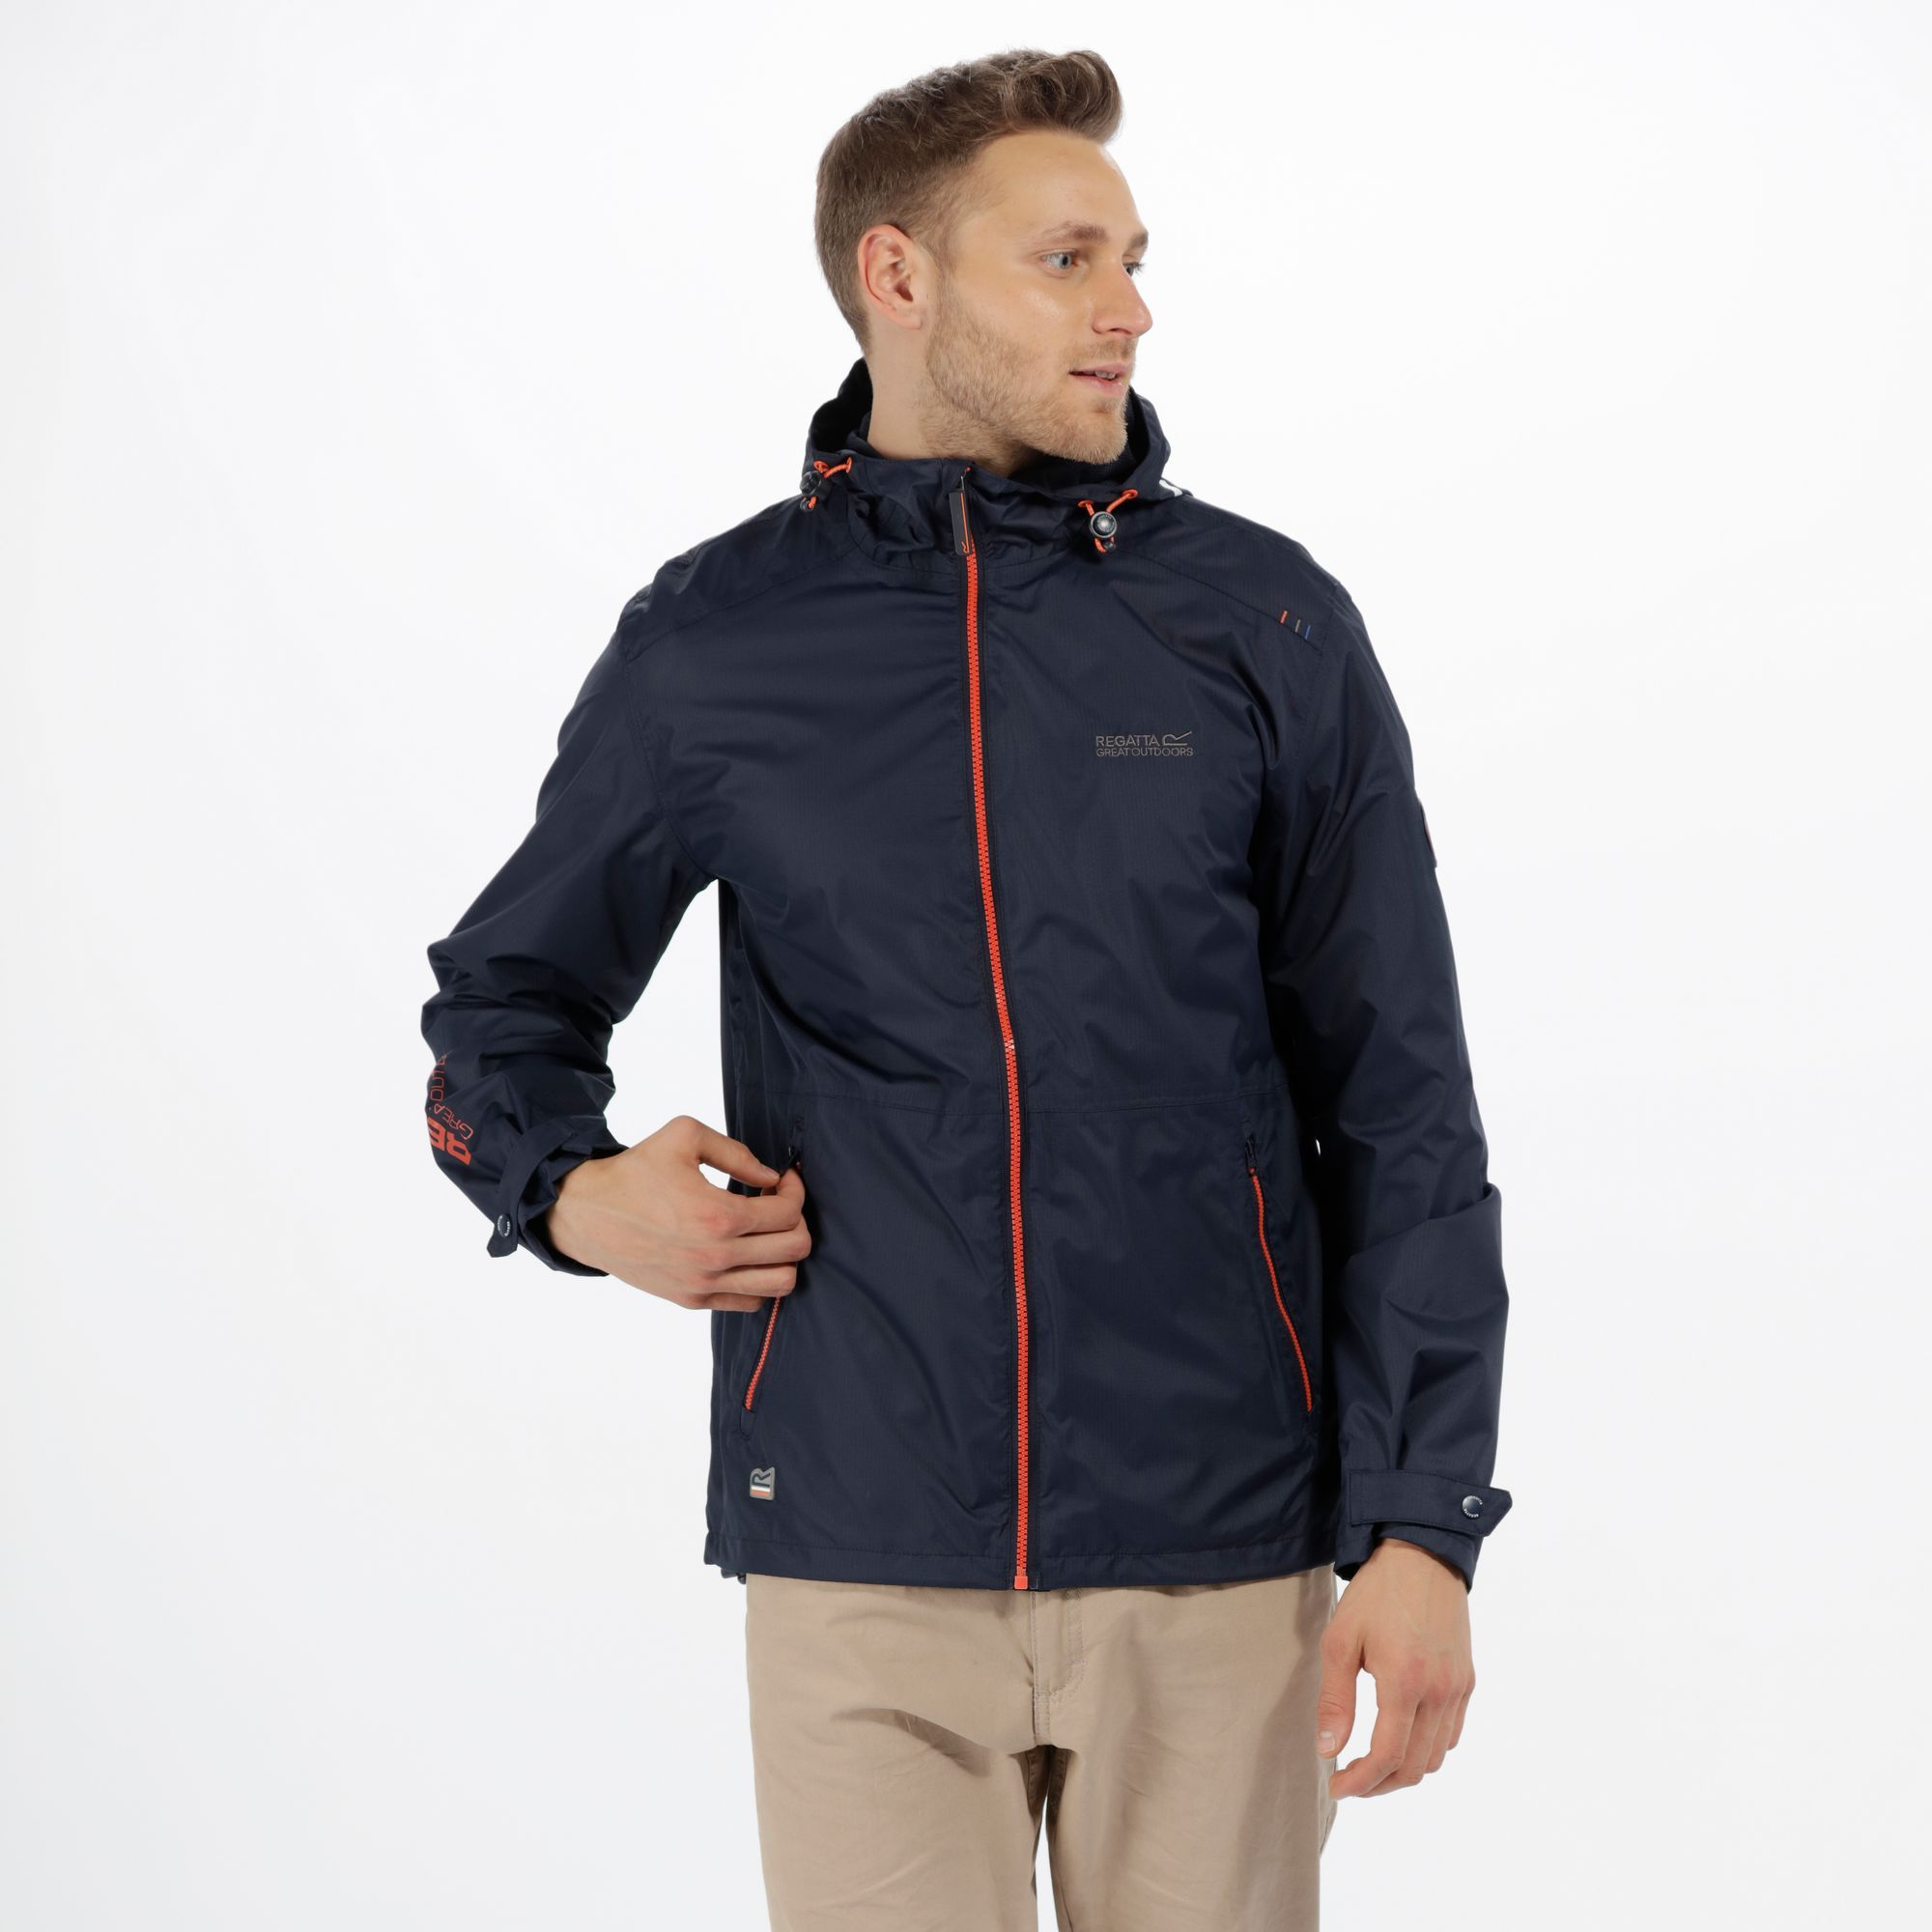 EXTRA 30% OFF MEN'S OUTDOOR CLOTHING - Whatever the weather, explore with confidence all year round thanks to Regatta waterproof, durable outdoor clothing, designed for men who love to be on the move. Enjoy protection against wind, rain and snow with fully waterproof designs; packable, lightweight clothing which performs anywhere and Quick-dry technology to reduce heat loss and improve comfort.